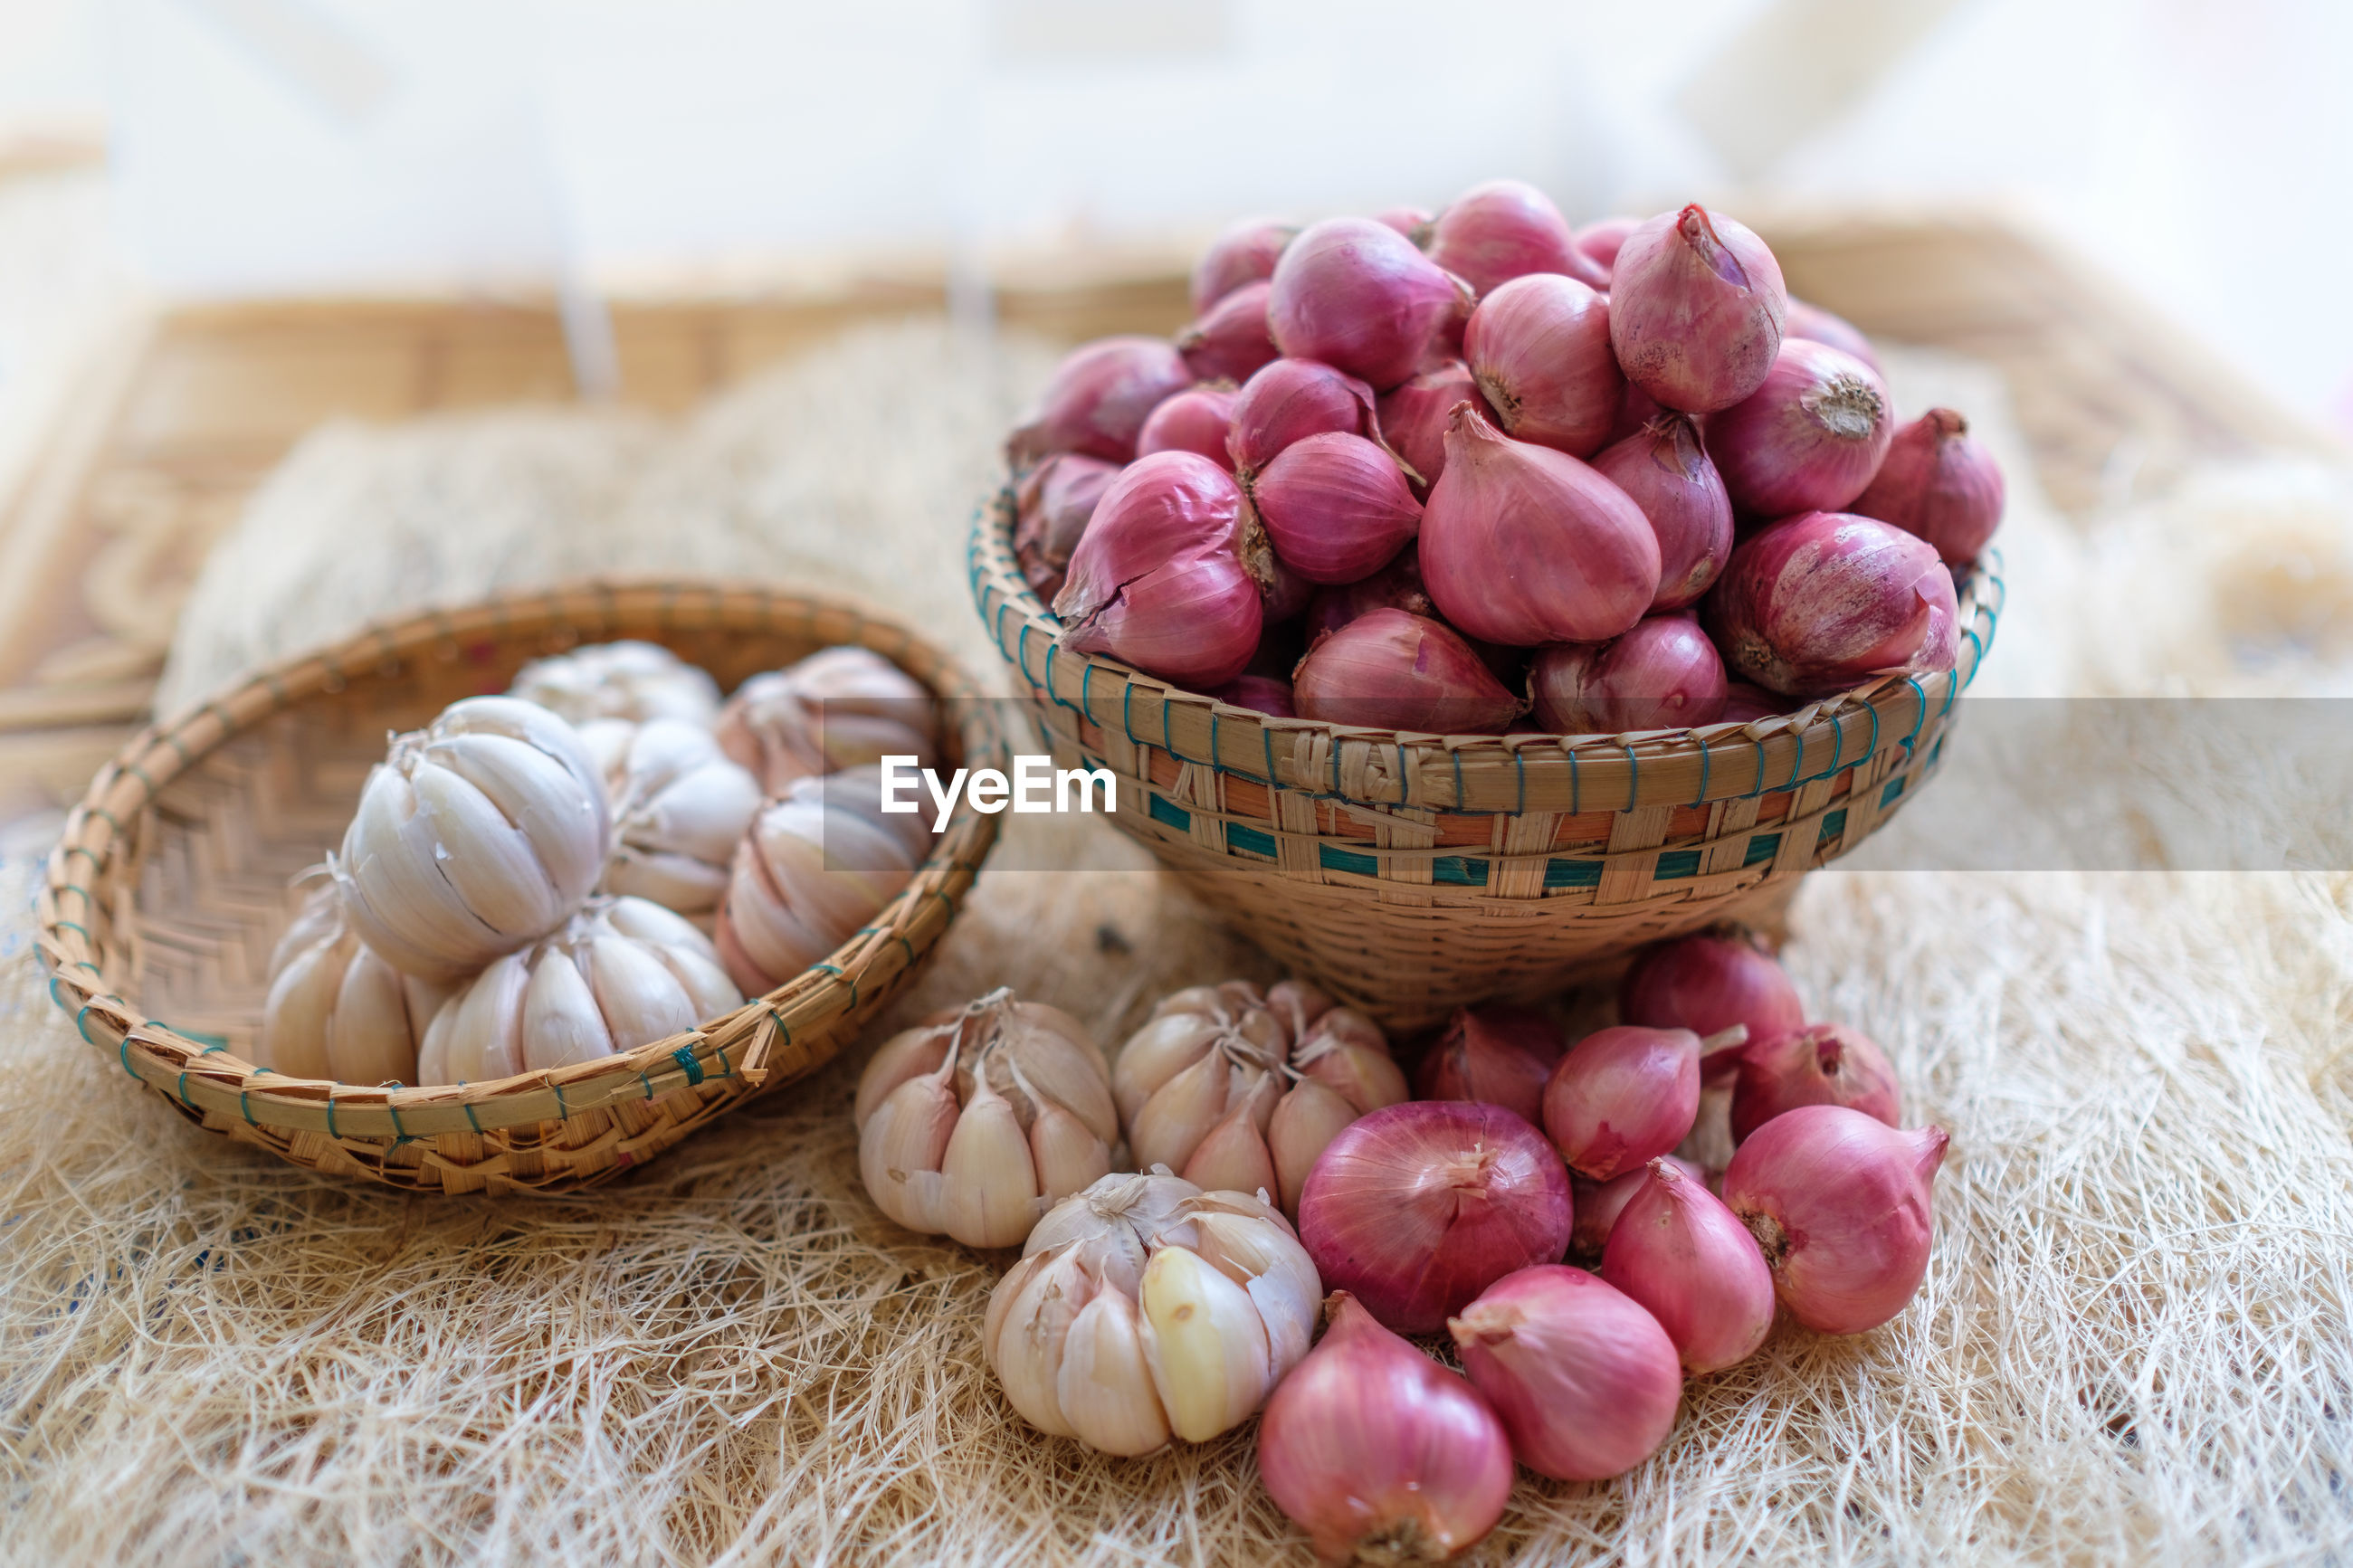 High angle view of onion and garlic in basket on table